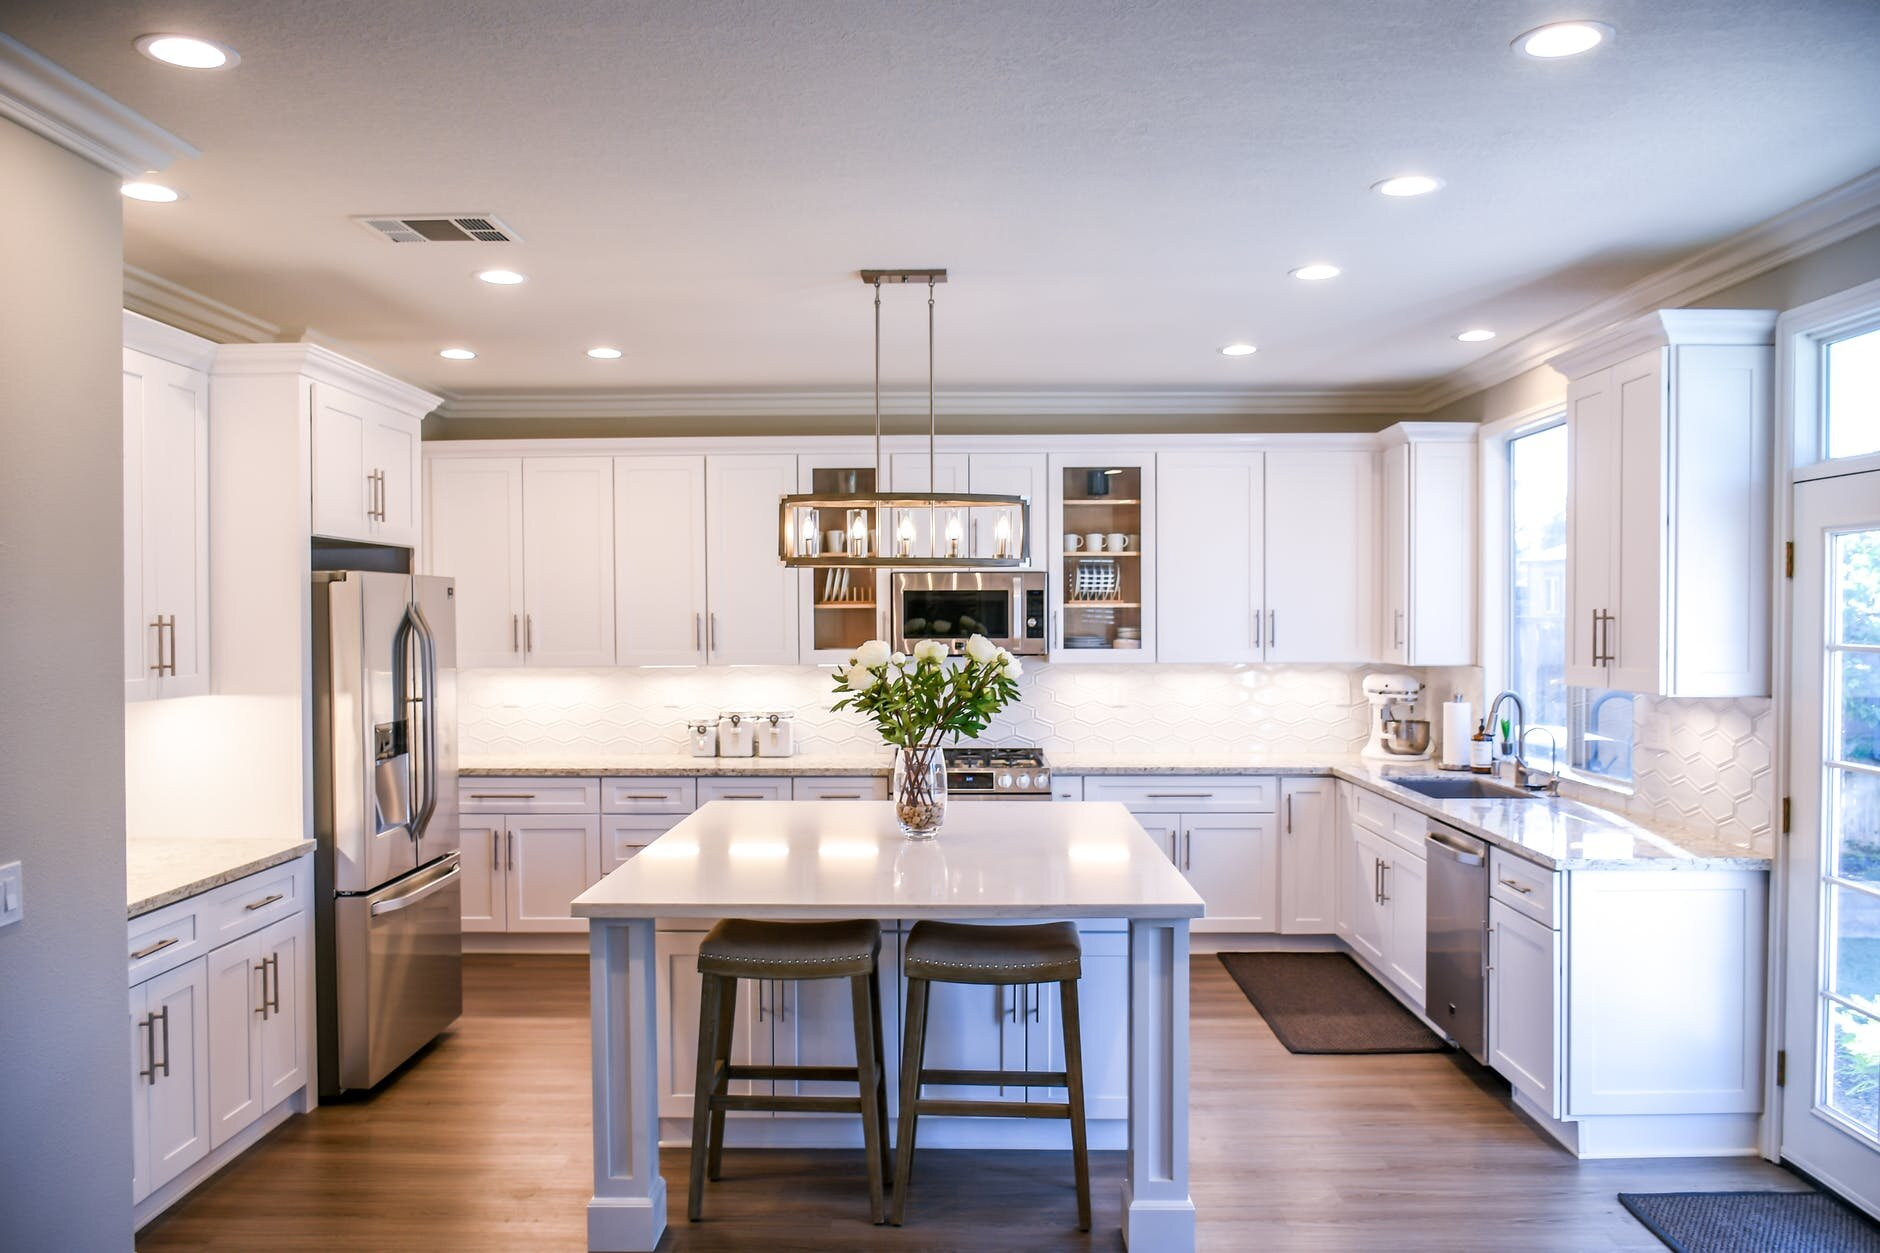 Post Construction Post Renovation Cleaning Services Mexicleaning